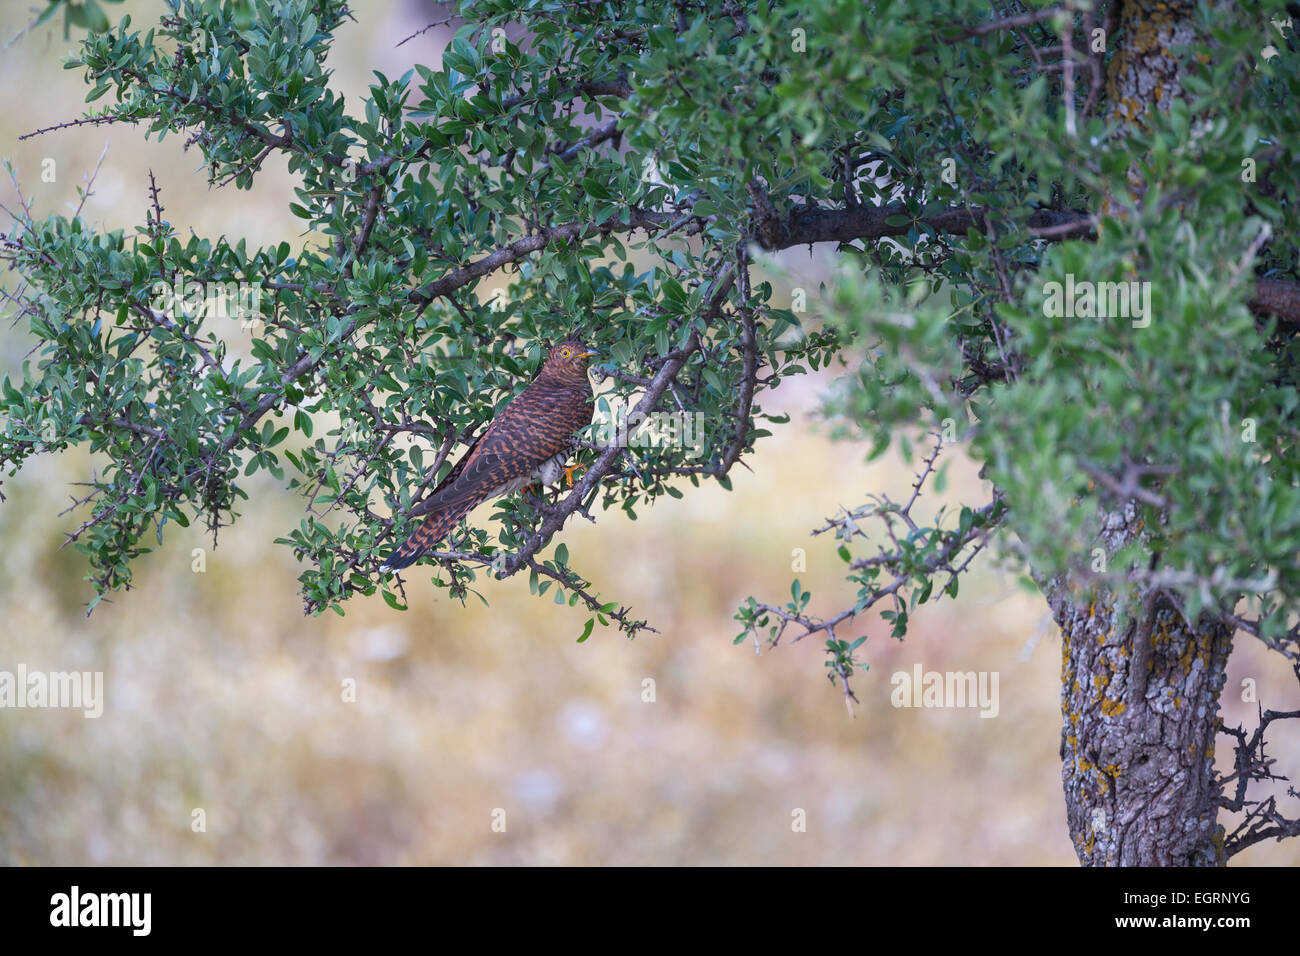 Common Cuckoo Cuculus canorus, female, perched in tree, Napi Valley, Lesvos in April. - Stock Image